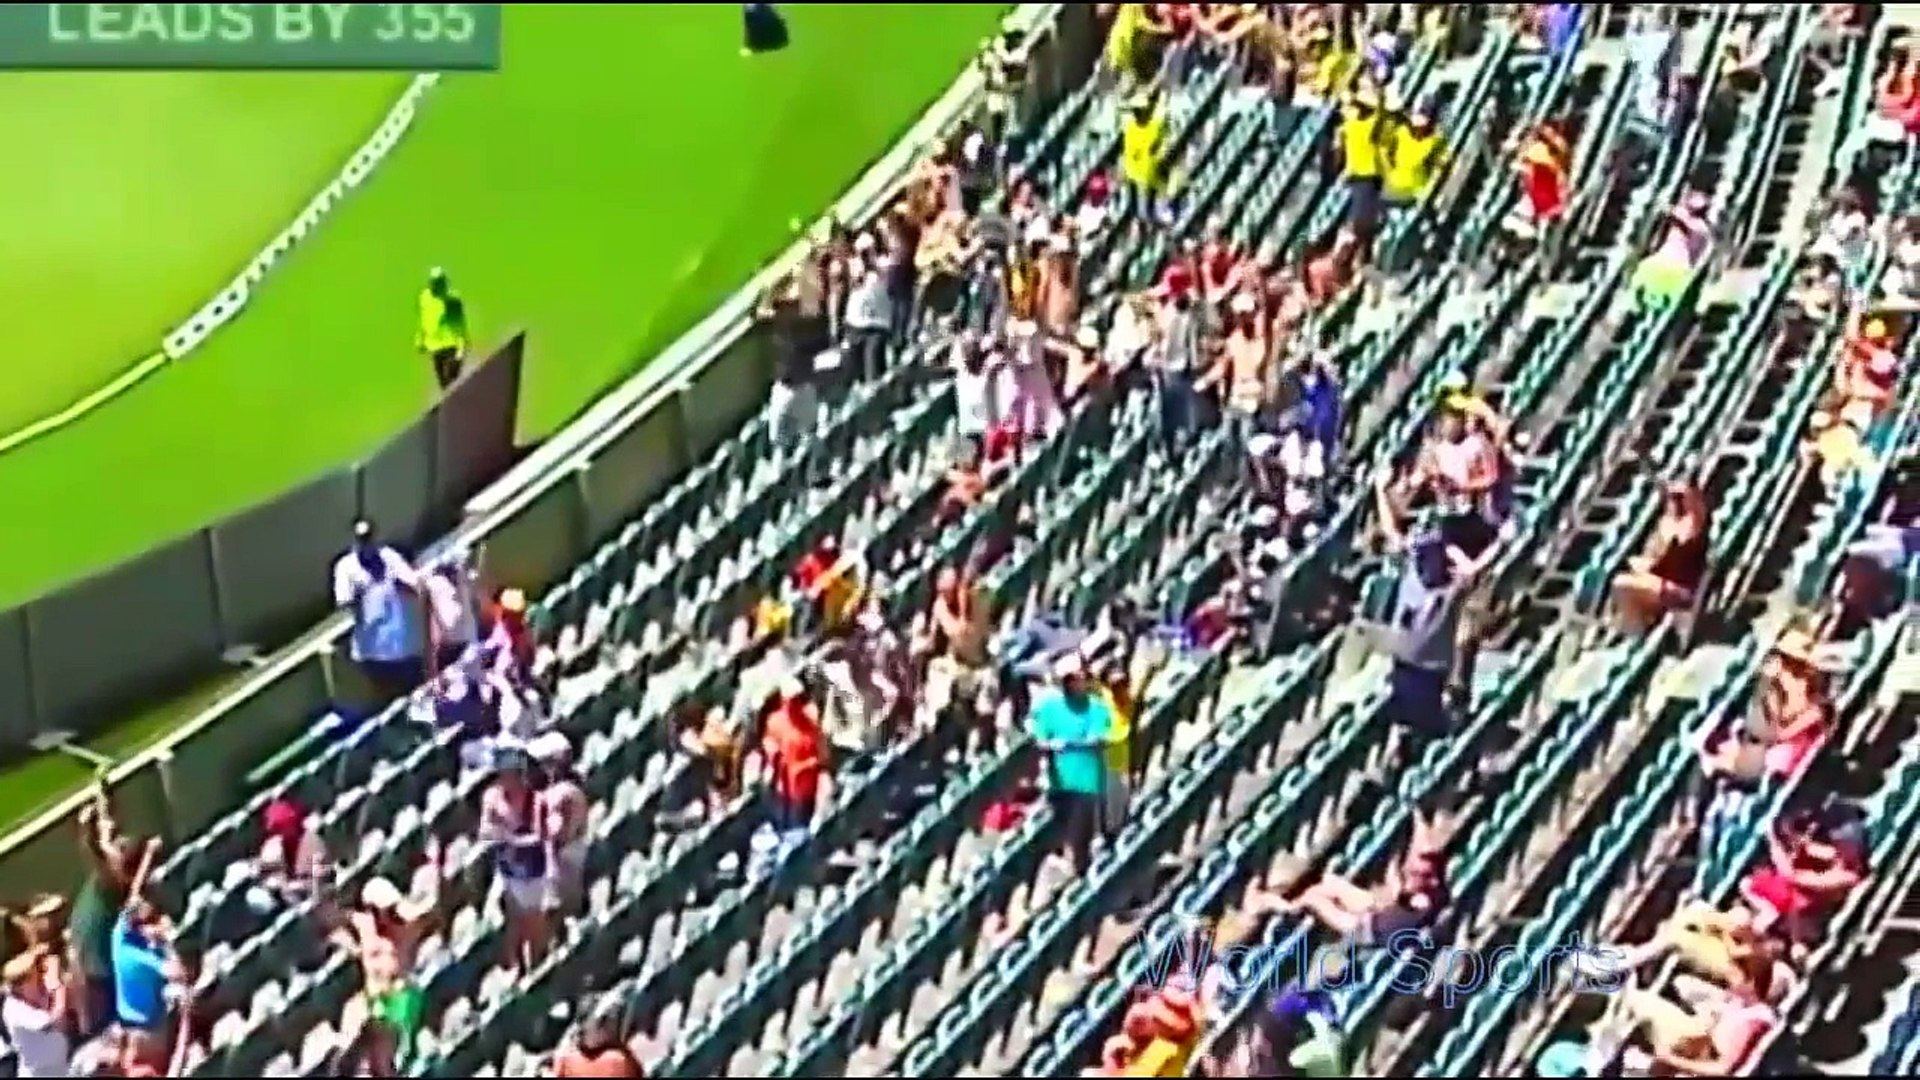 best cricket catch by fan - best catch by crowd - people takes catch in cricket